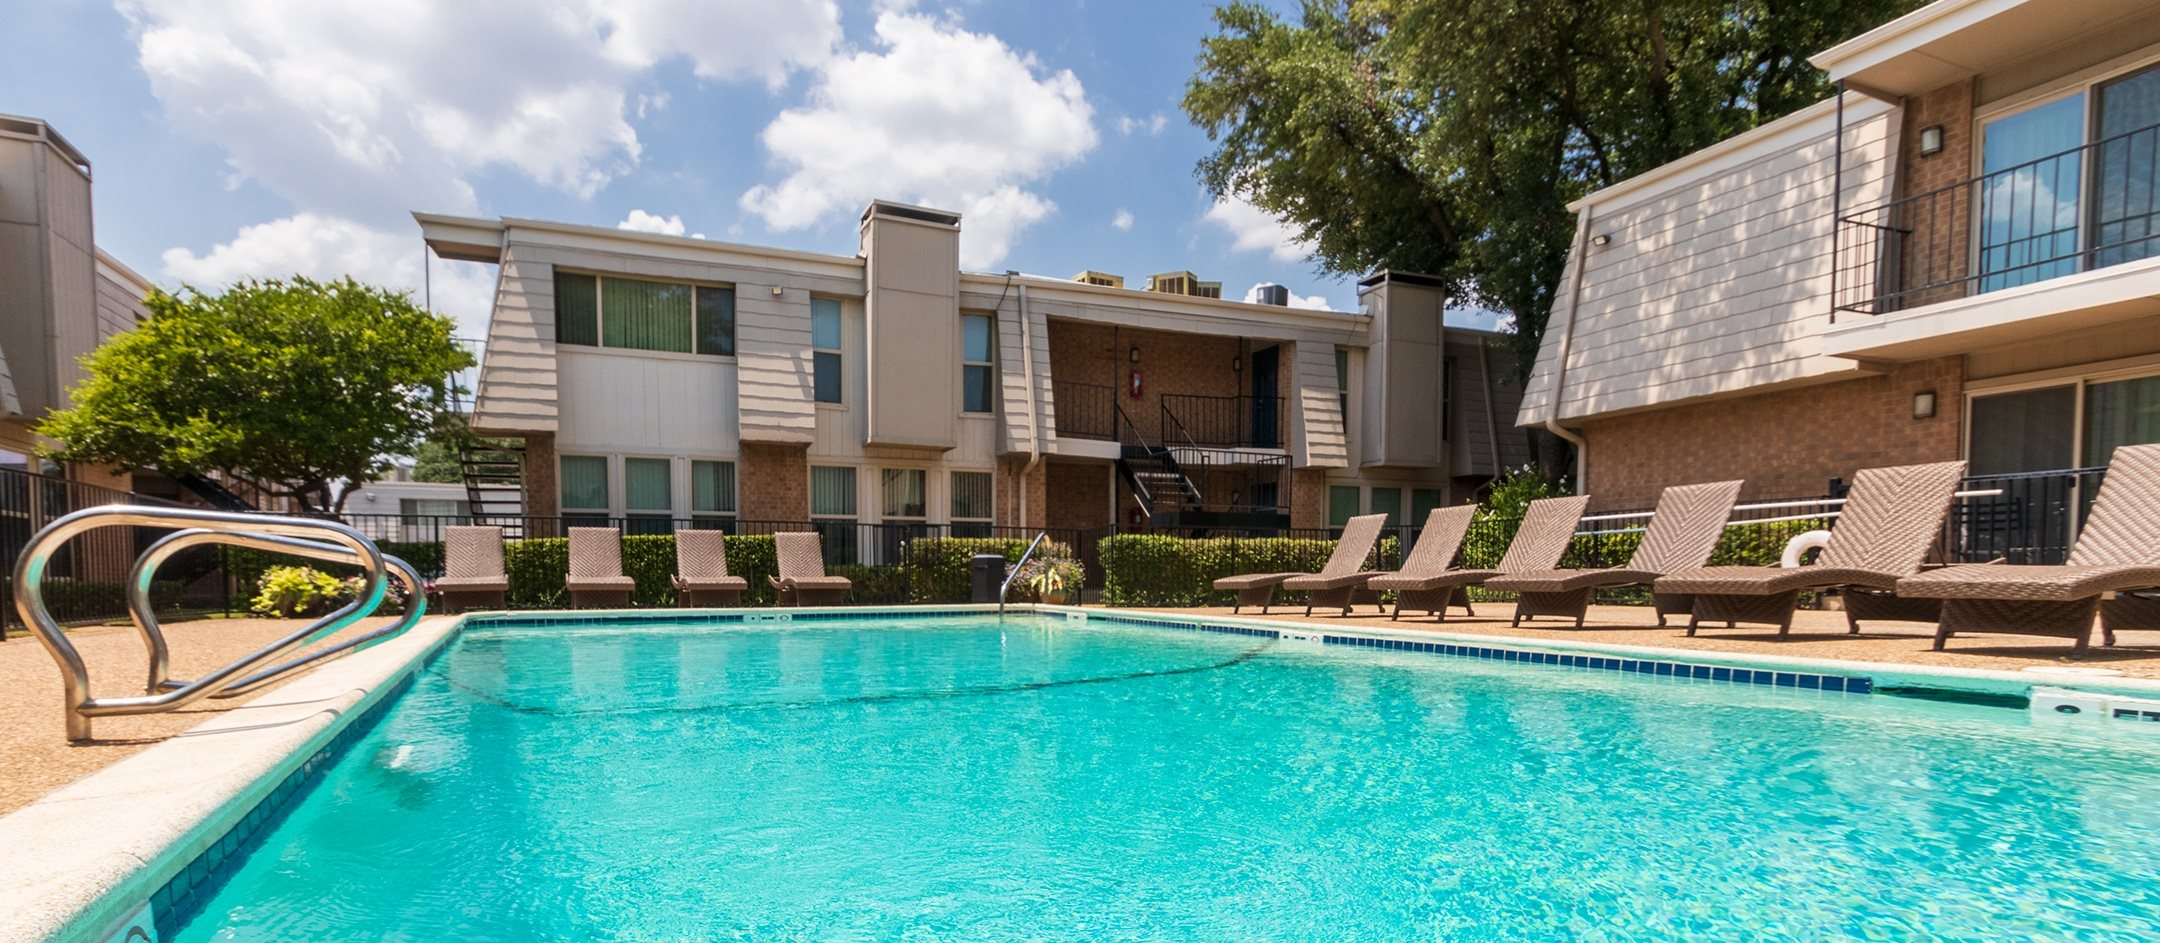 This is a photo of the pool area at Woodbridge Apartments in Dallas, Texas.